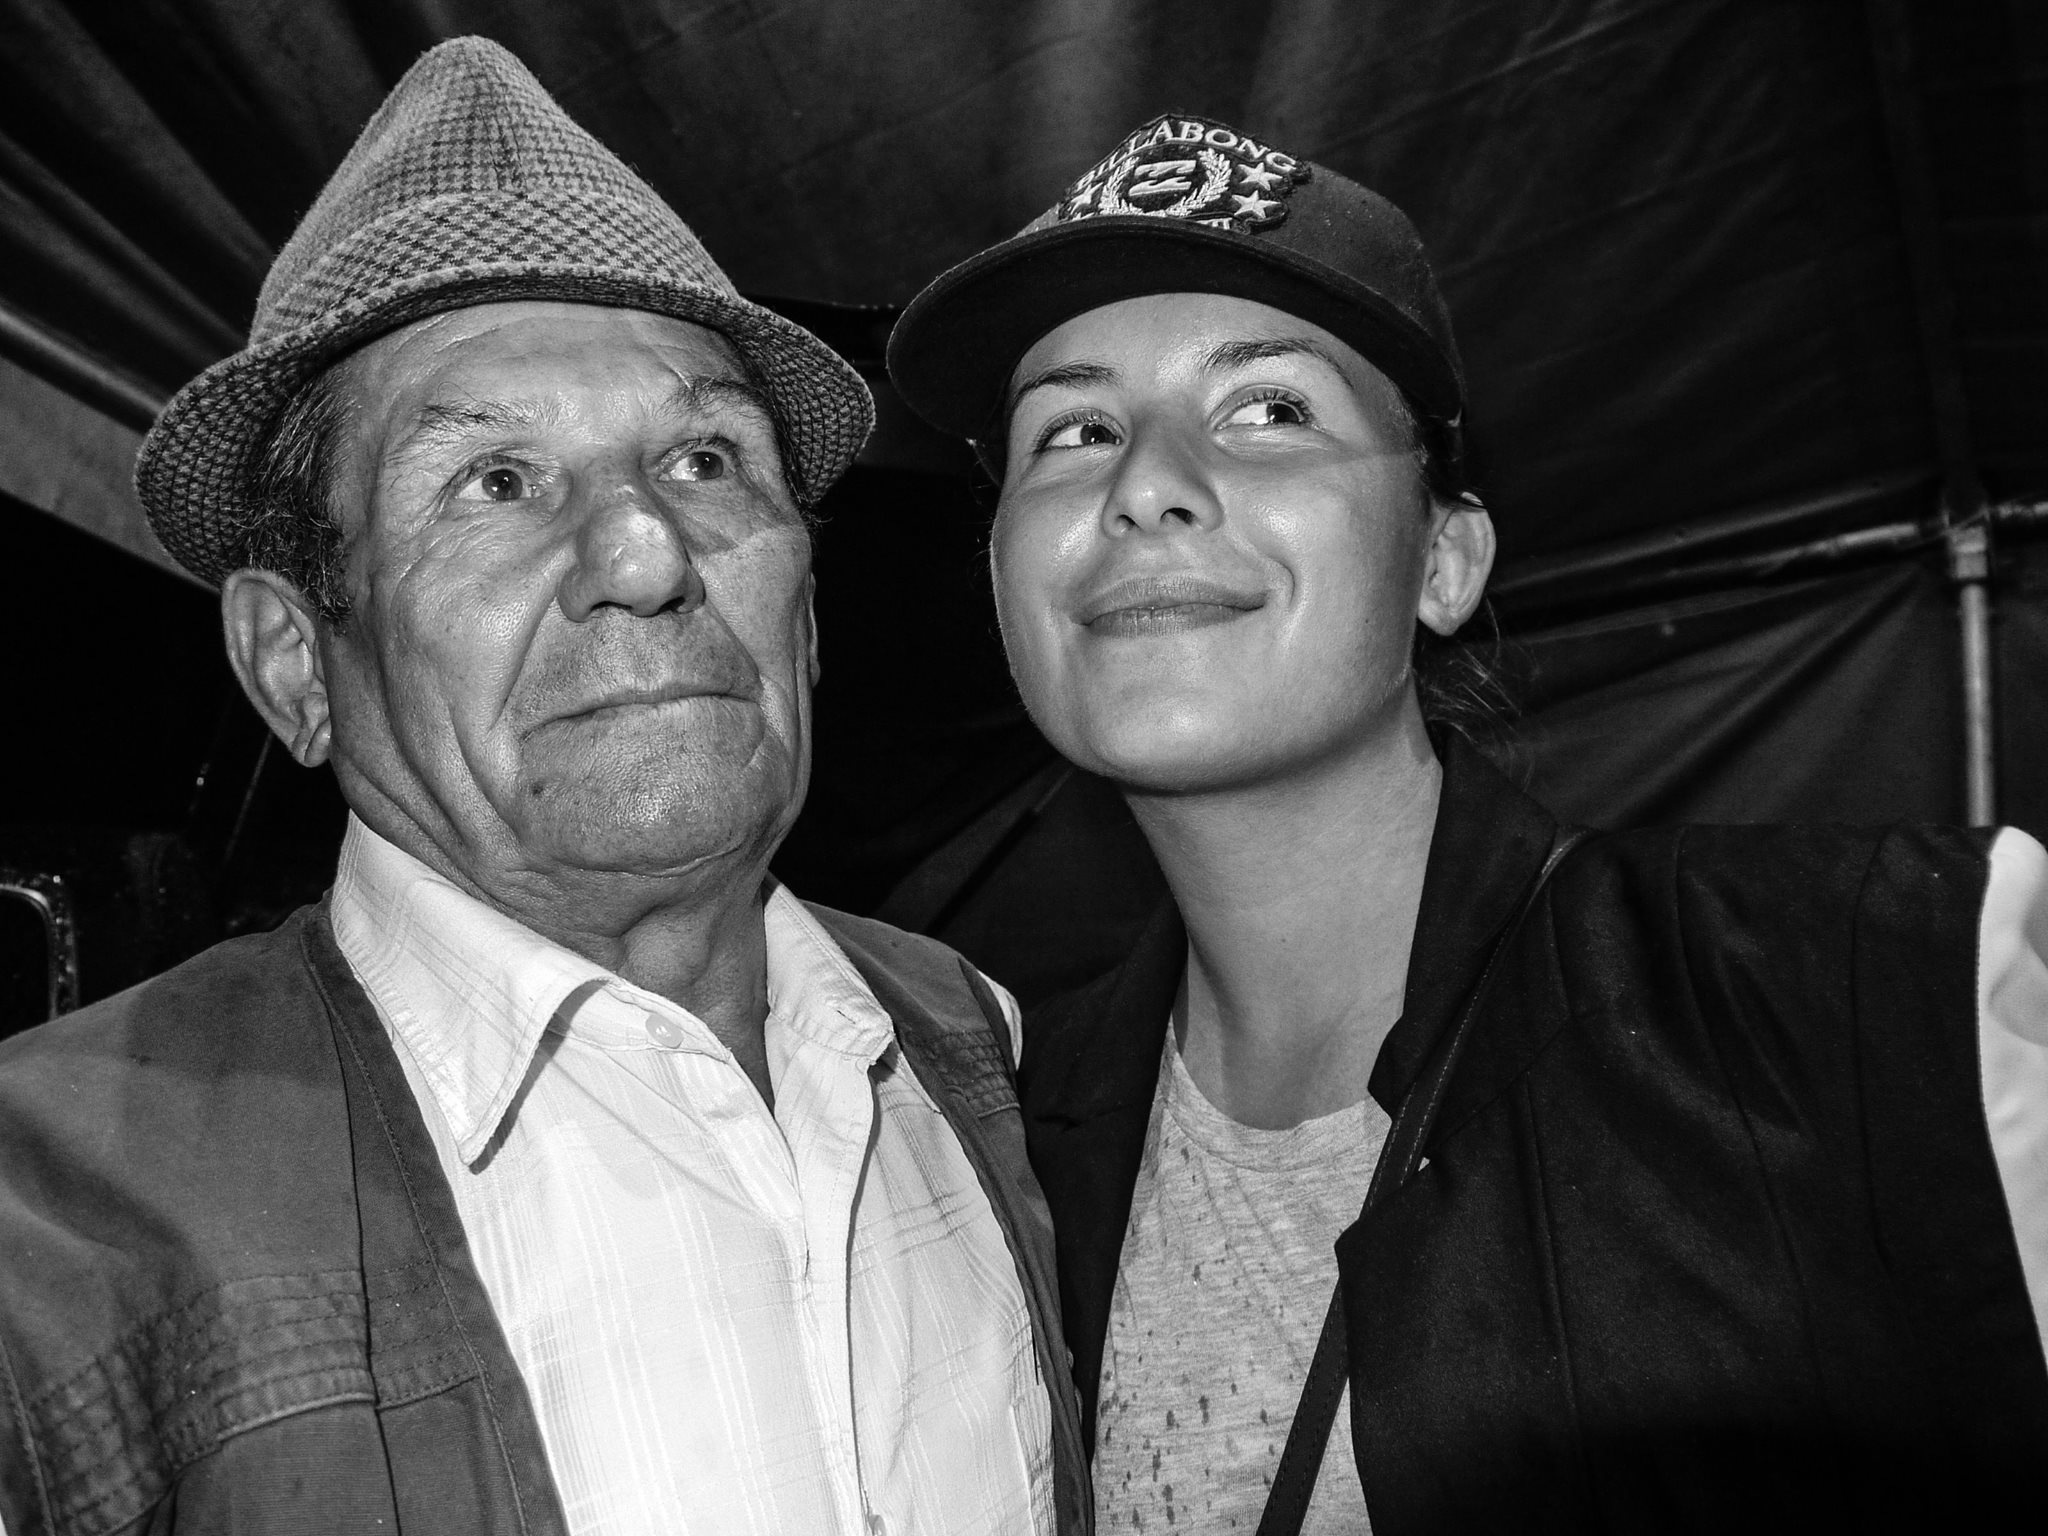 Irma and her Uncle by Goran Jorganovich